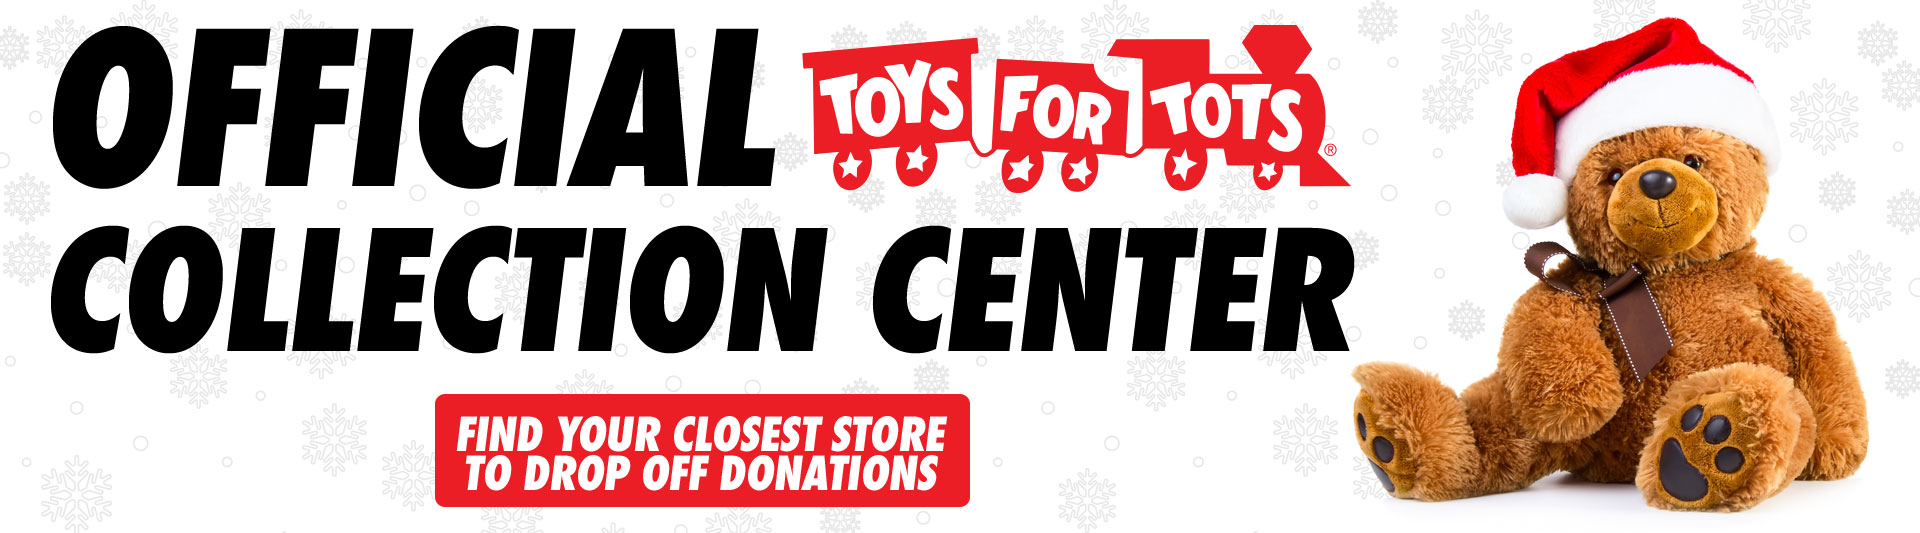 Official Toys for Tots Donation Center